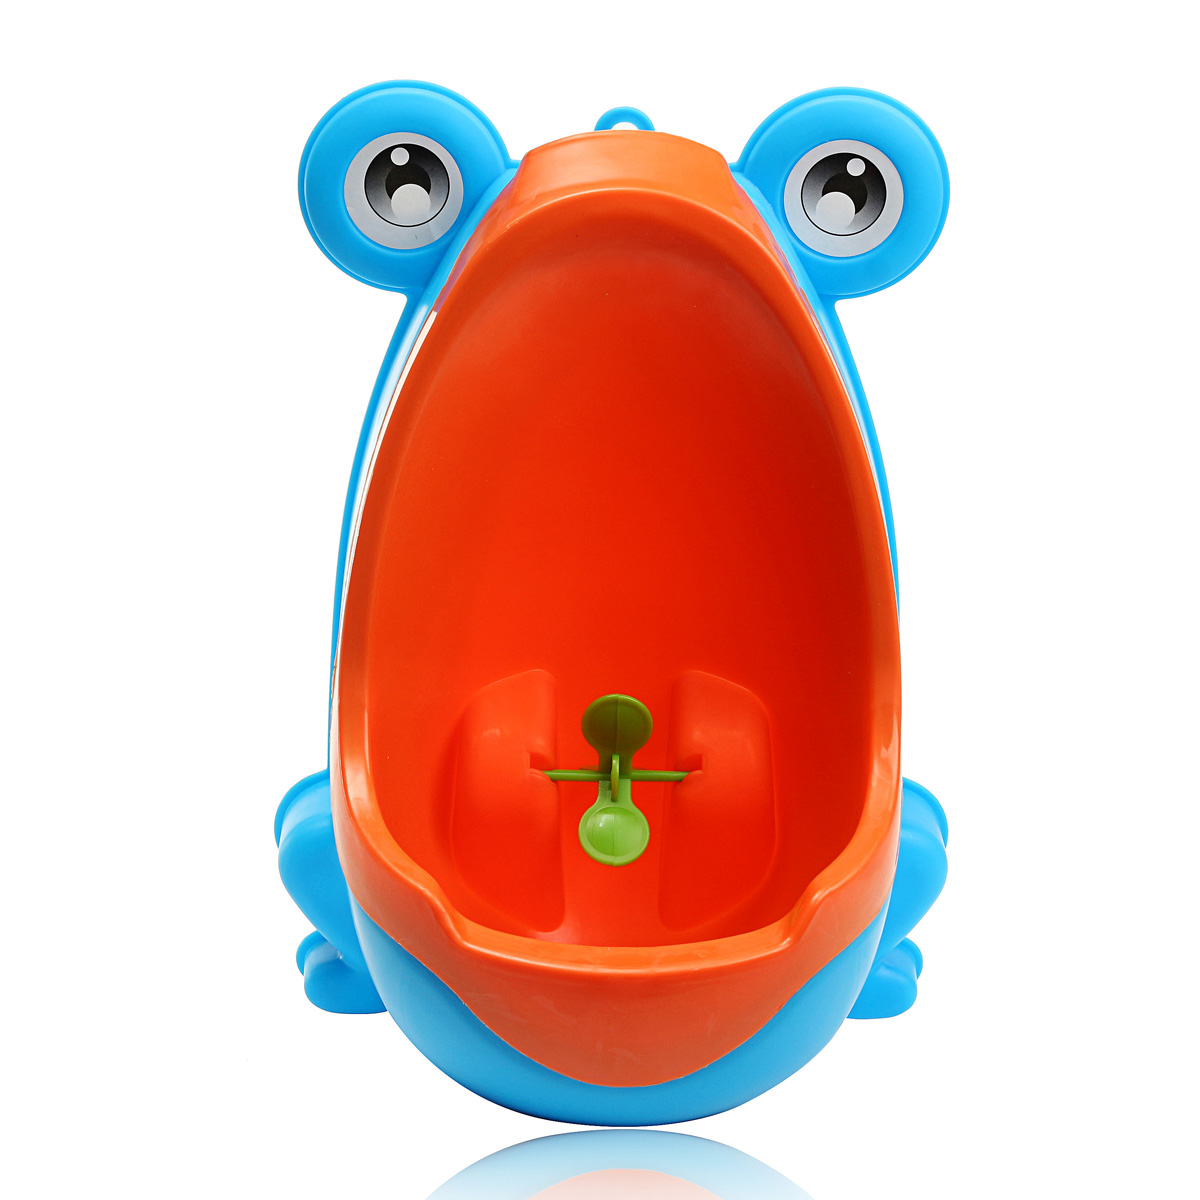 Click here to buy Meigar Cute Frog Potty Training Urinal Toilet Urine Train Froggy Potty for Children Kids Toddler Baby Boys... by Meigar.